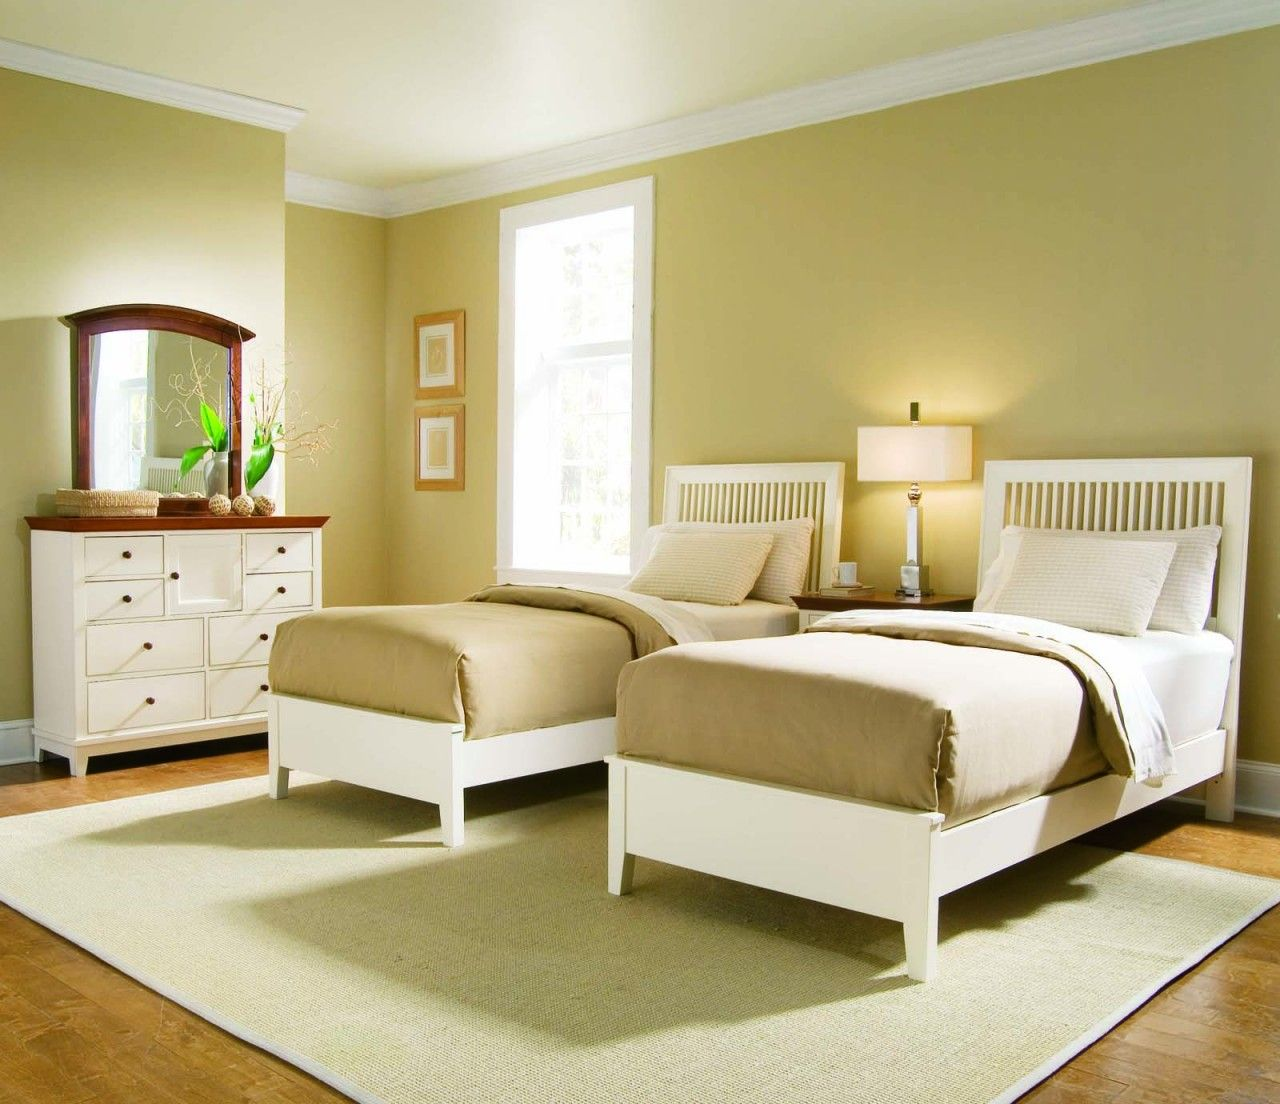 Girly Bedroom Furniture Uk: Simple Twin Bedroom Set Idea For Girls With Golden Brown